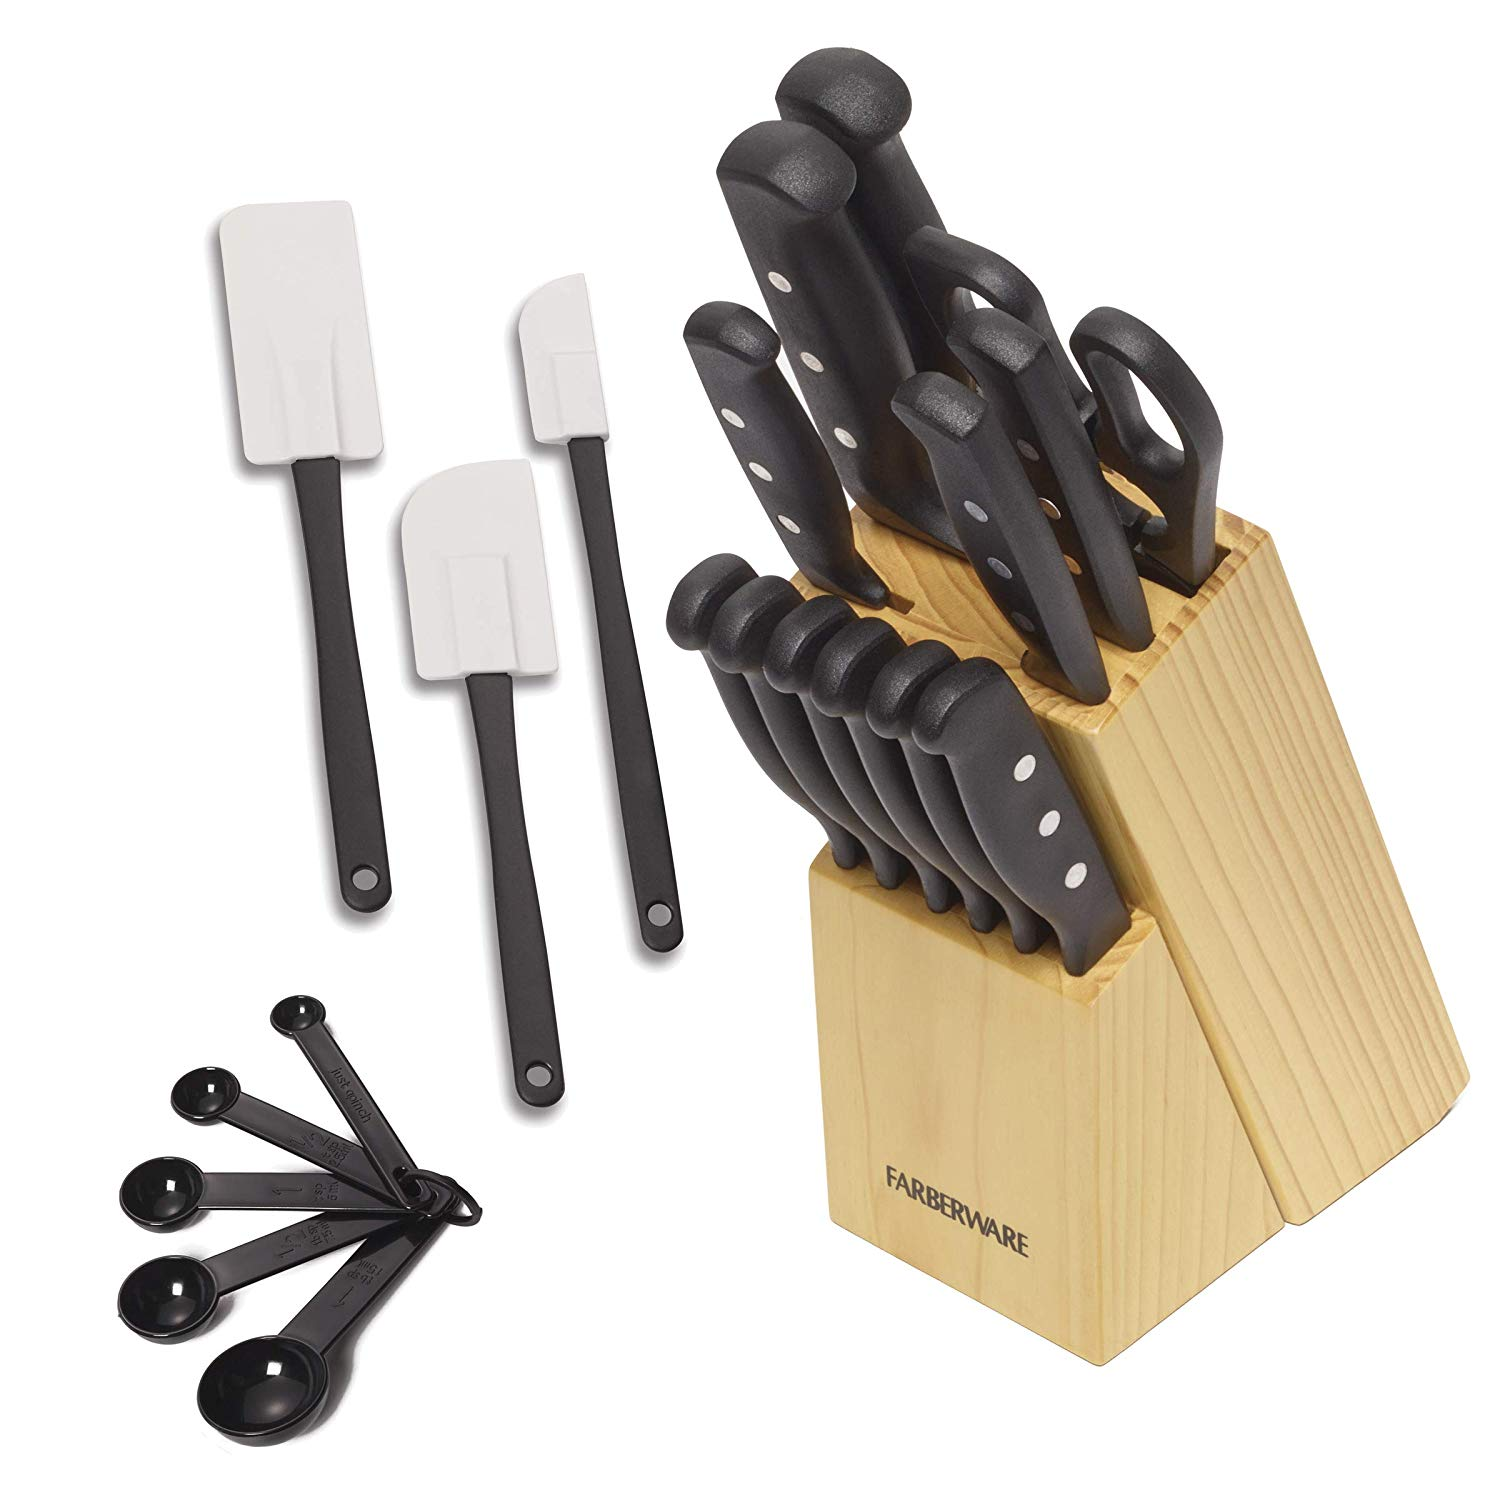 5152501 'Never Needs Sharpening' 22-Piece Triple Rivet Stainless Steel Knife Block Set with Kitchen Tool Set For Back to School College, Black, PERFECT SET FOR BACK.., By Farberware